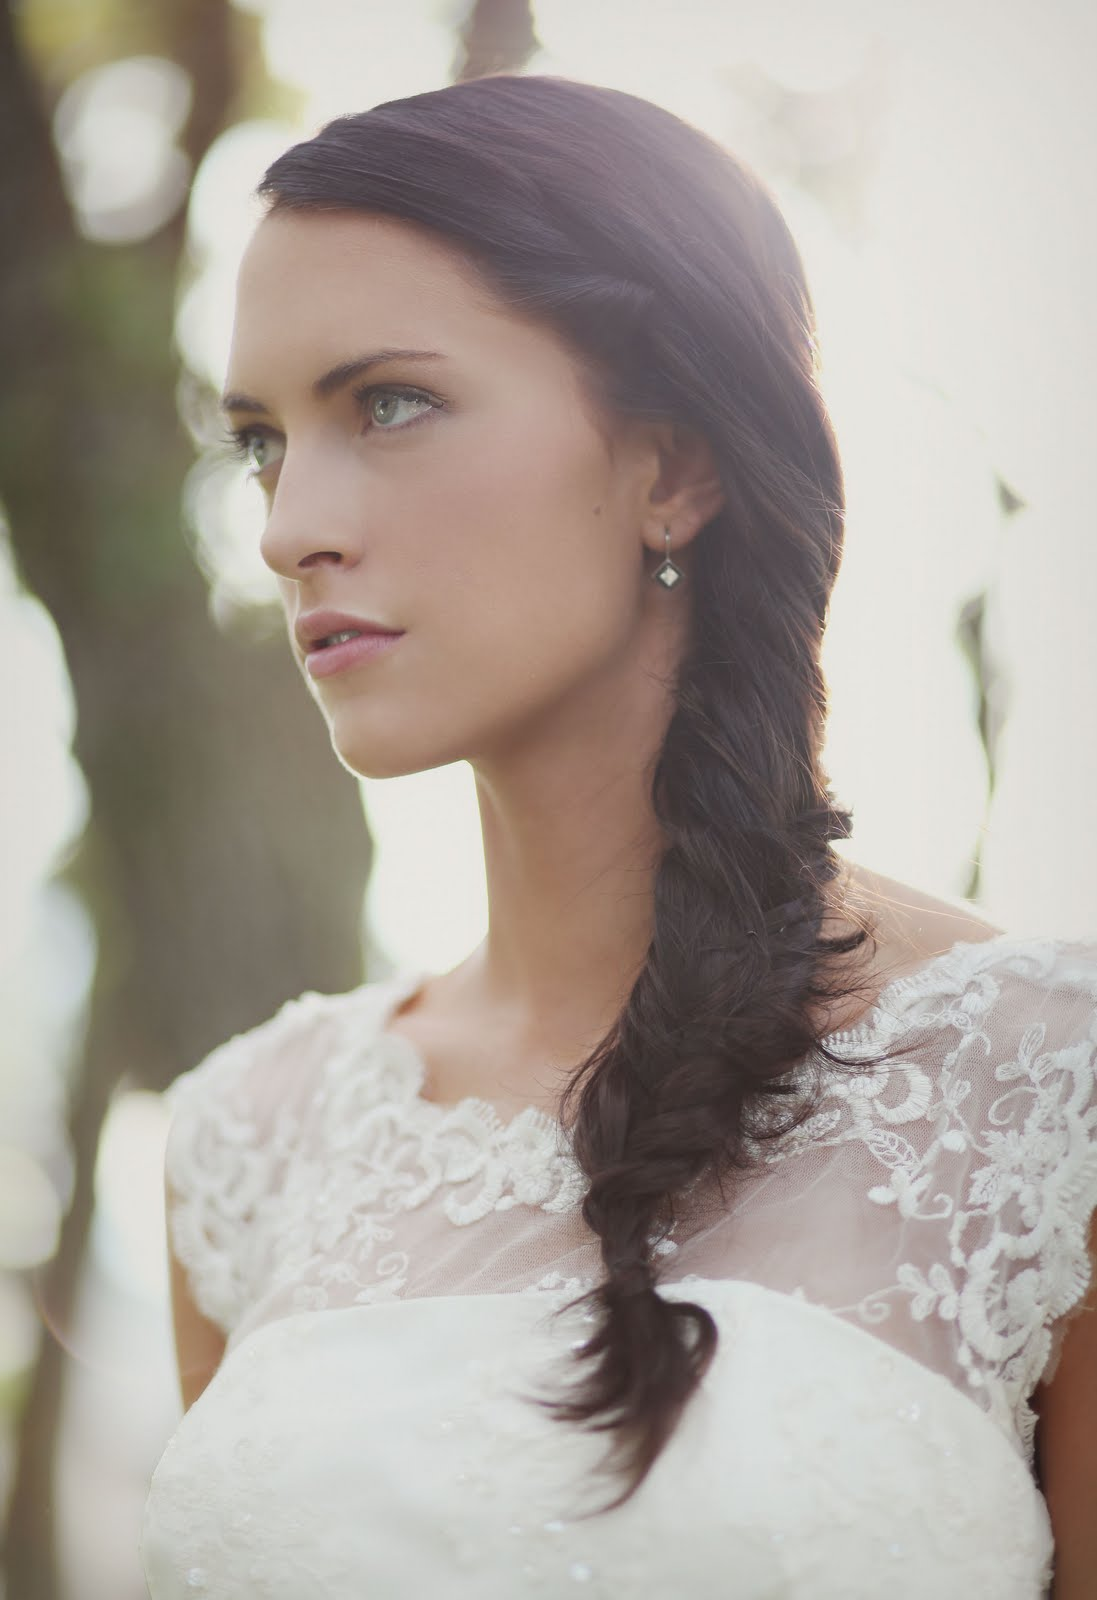 15 Best Bridal Hairstyles for Every Length - Hairstyles ...